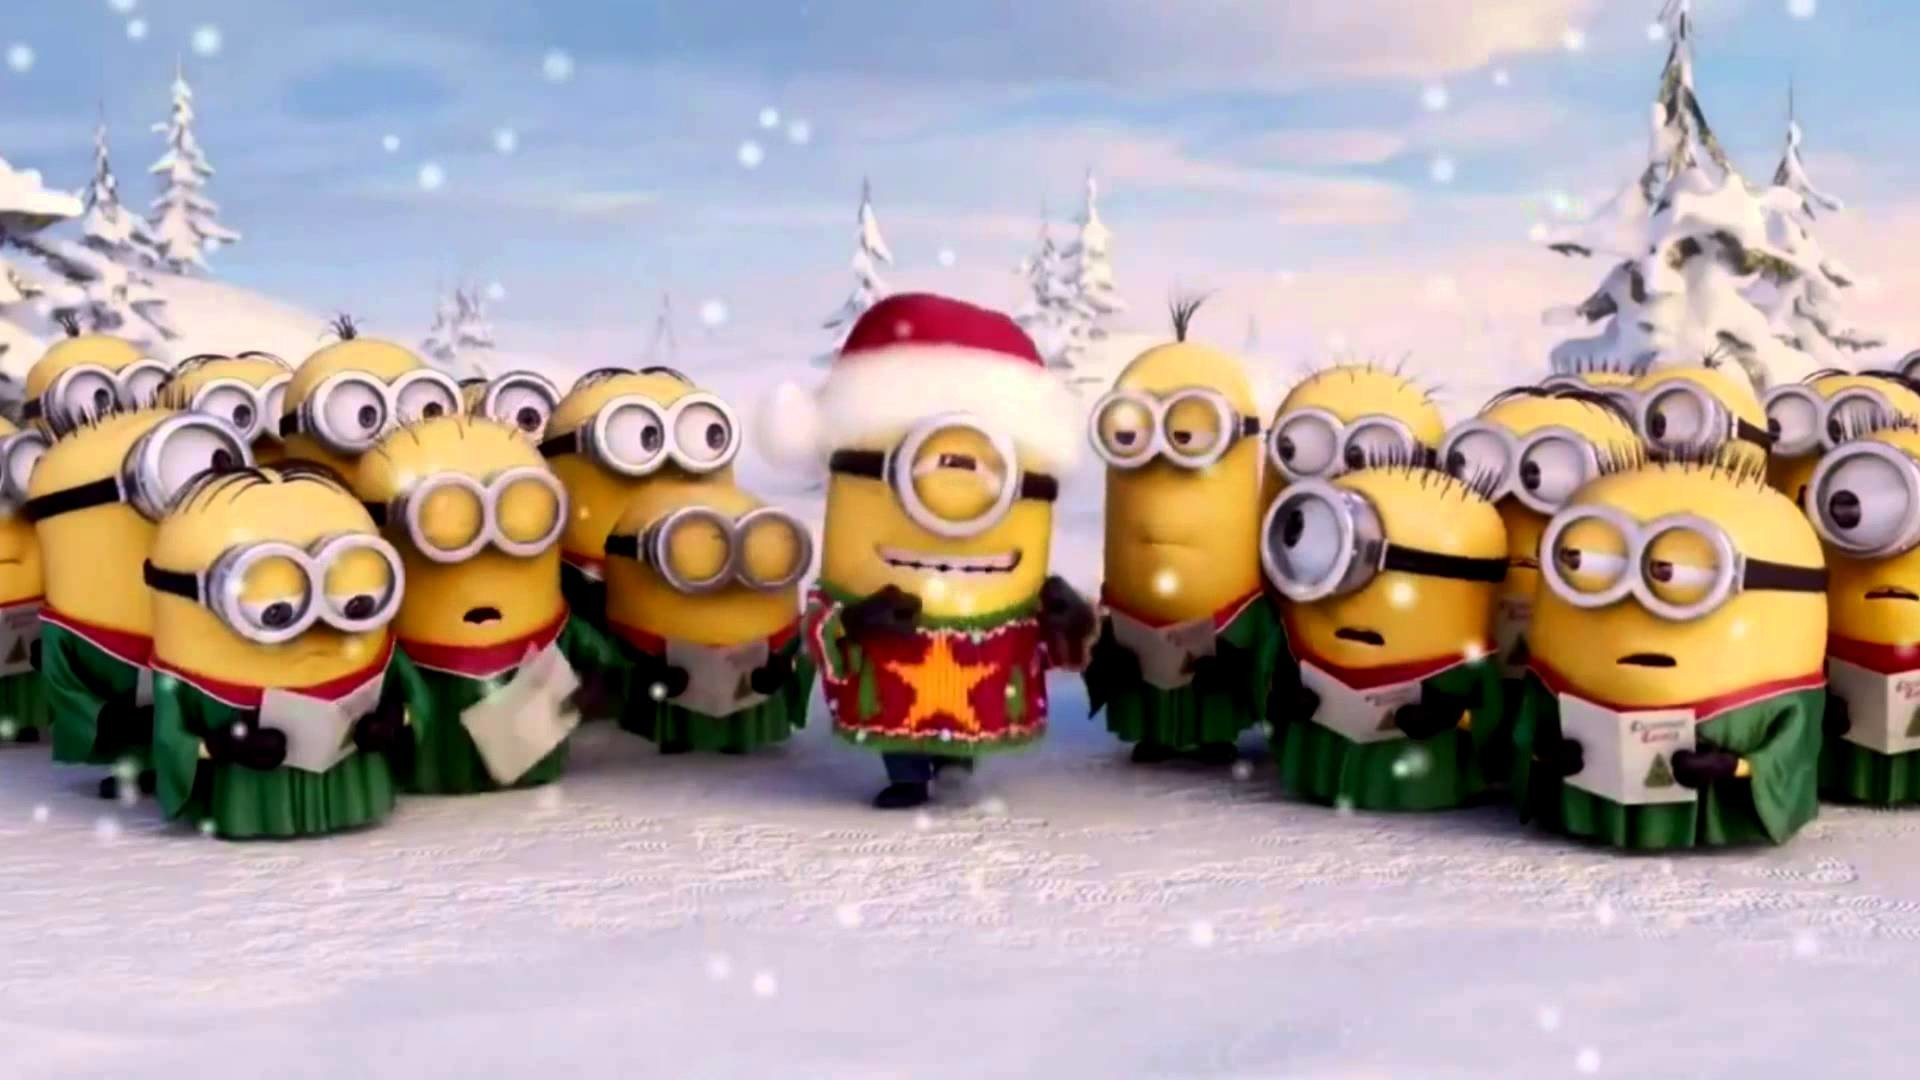 1920x1080 Christmas with minions in Suriname - YouTube